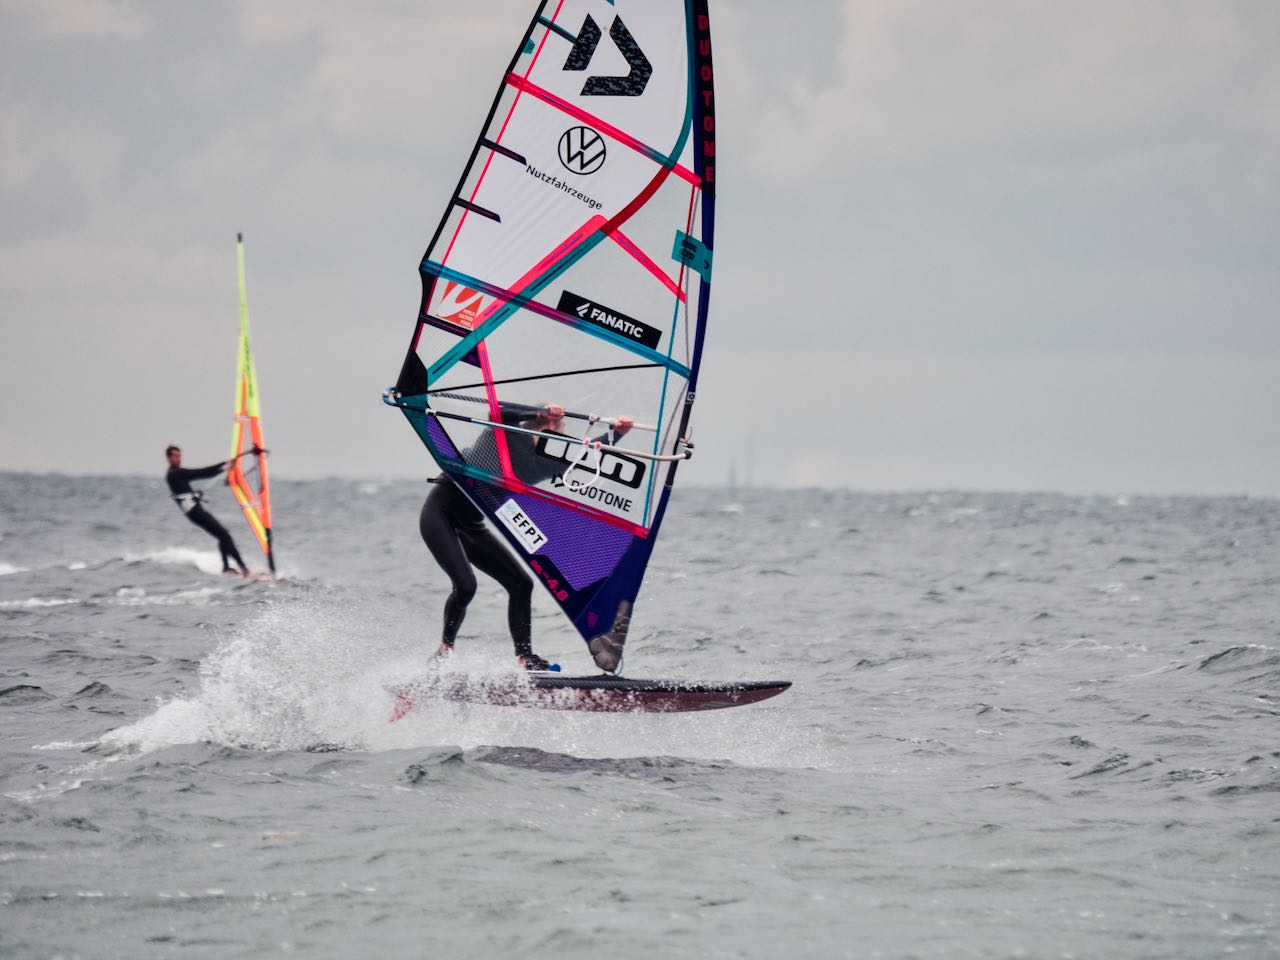 Niclas Nebelung with a top performance in the tow-in and in the windsurfing session (Photo by Valentin Boeckler)